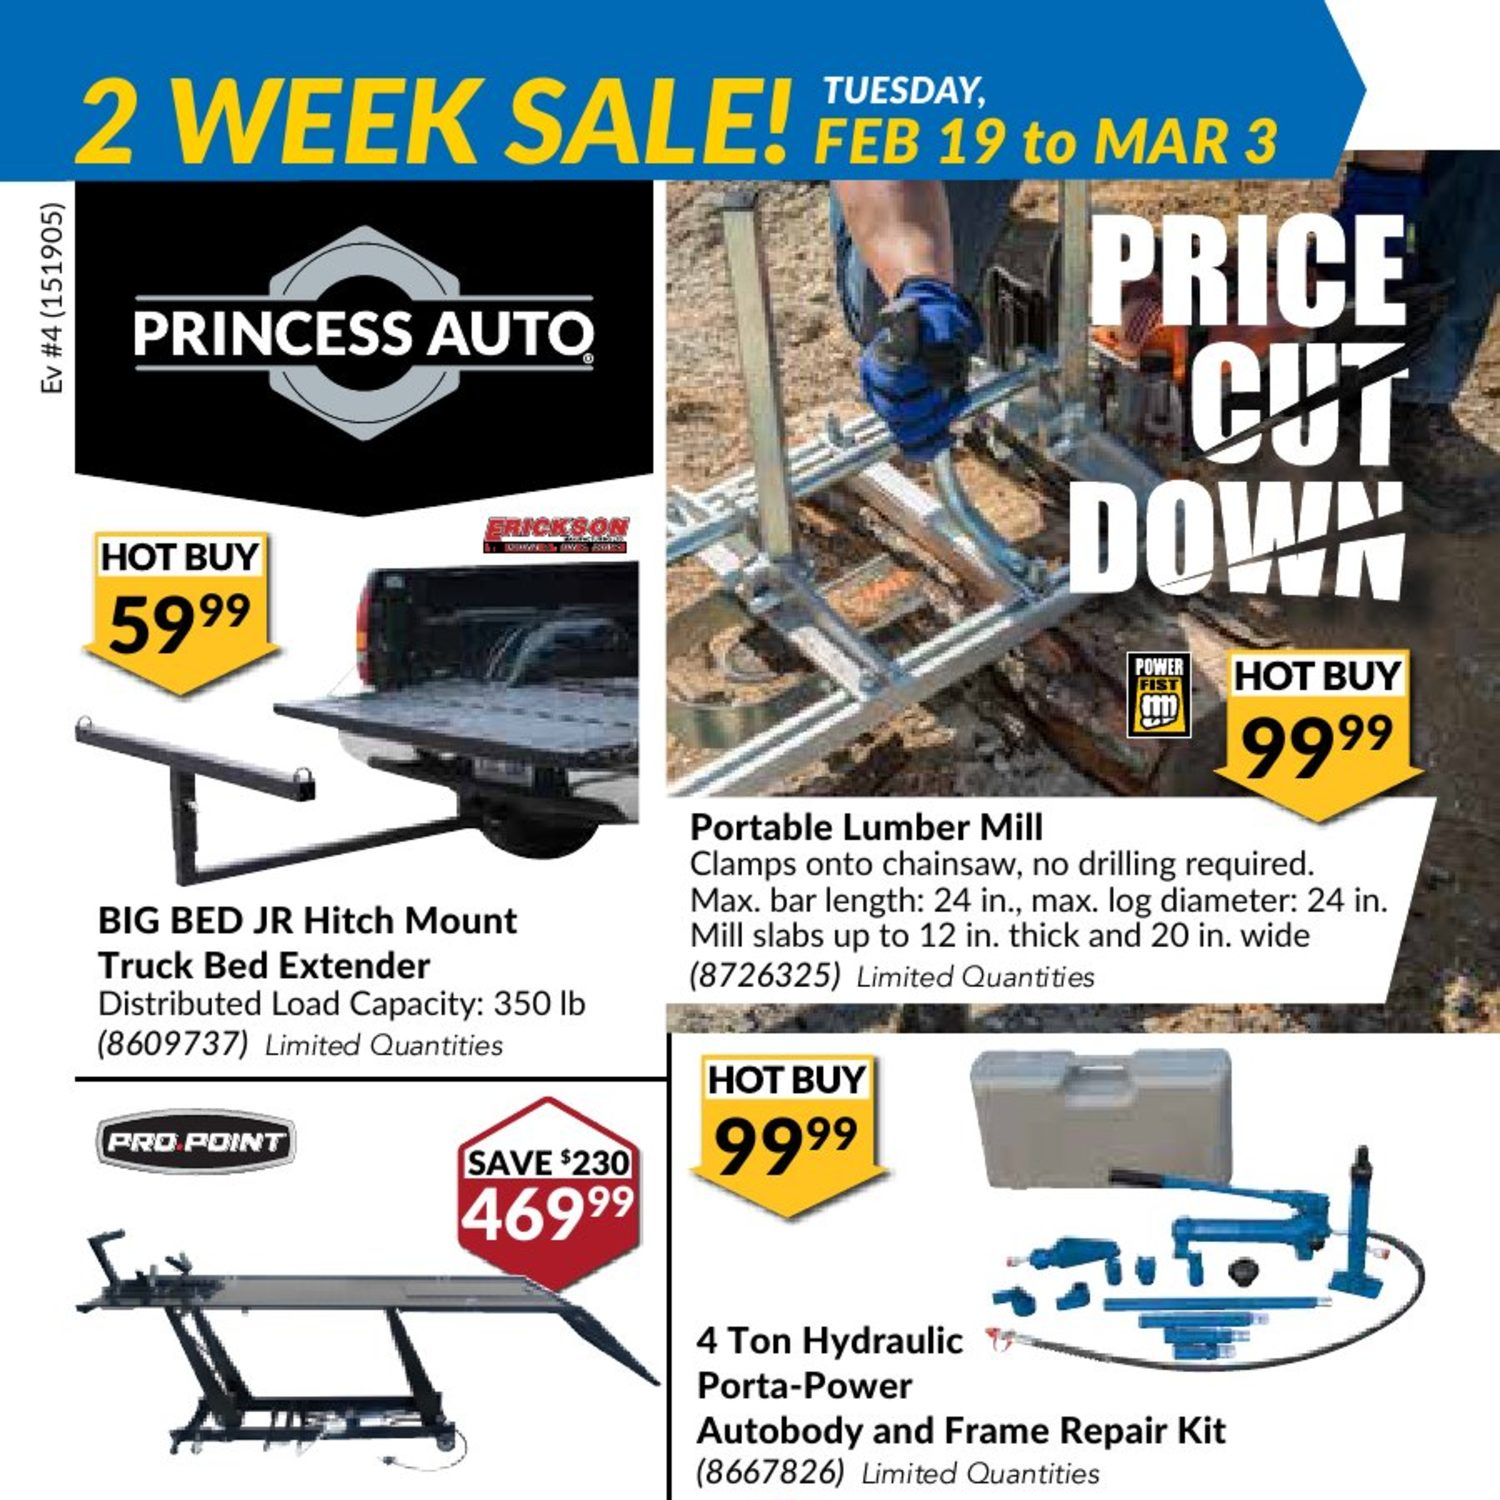 cb44e8990d10 Princess Auto Weekly Flyer - 2 Week Sale! - Price Cut Down - Feb 19 – Mar 3  - RedFlagDeals.com